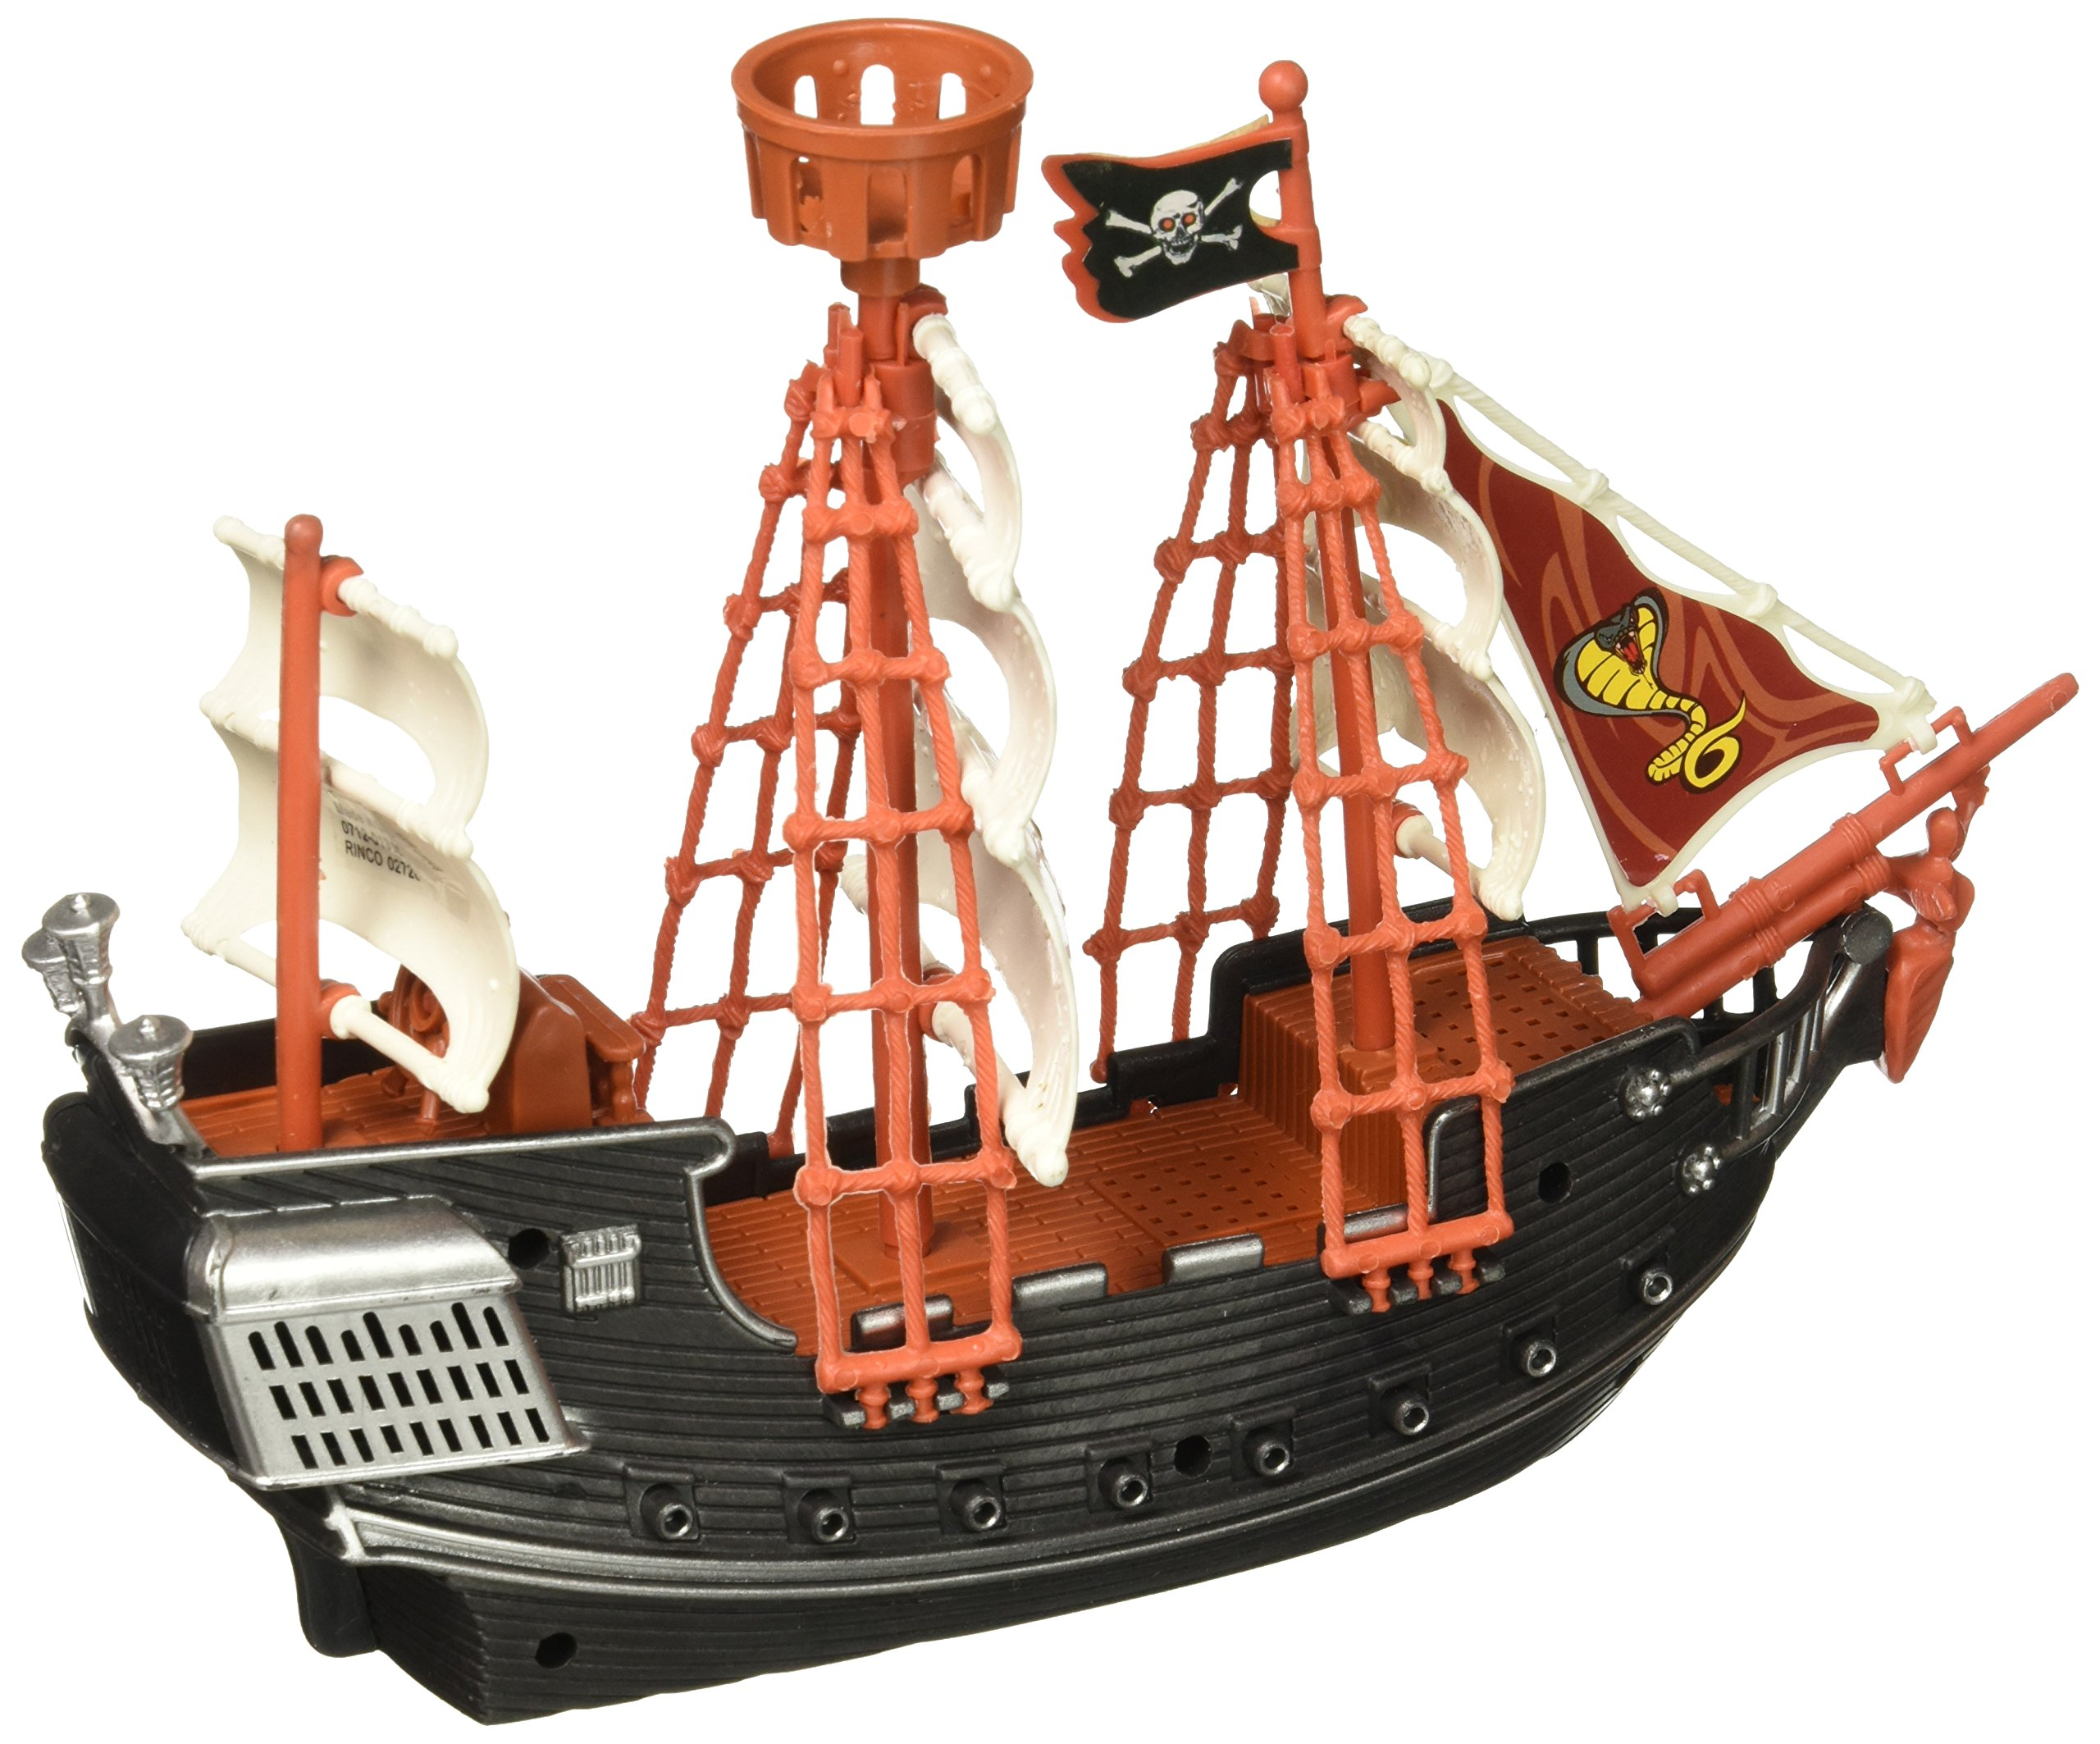 Oasis Supply Extra Large Pirate Ship Cake Topper - 10'' Long by Oasis Supply (Image #1)